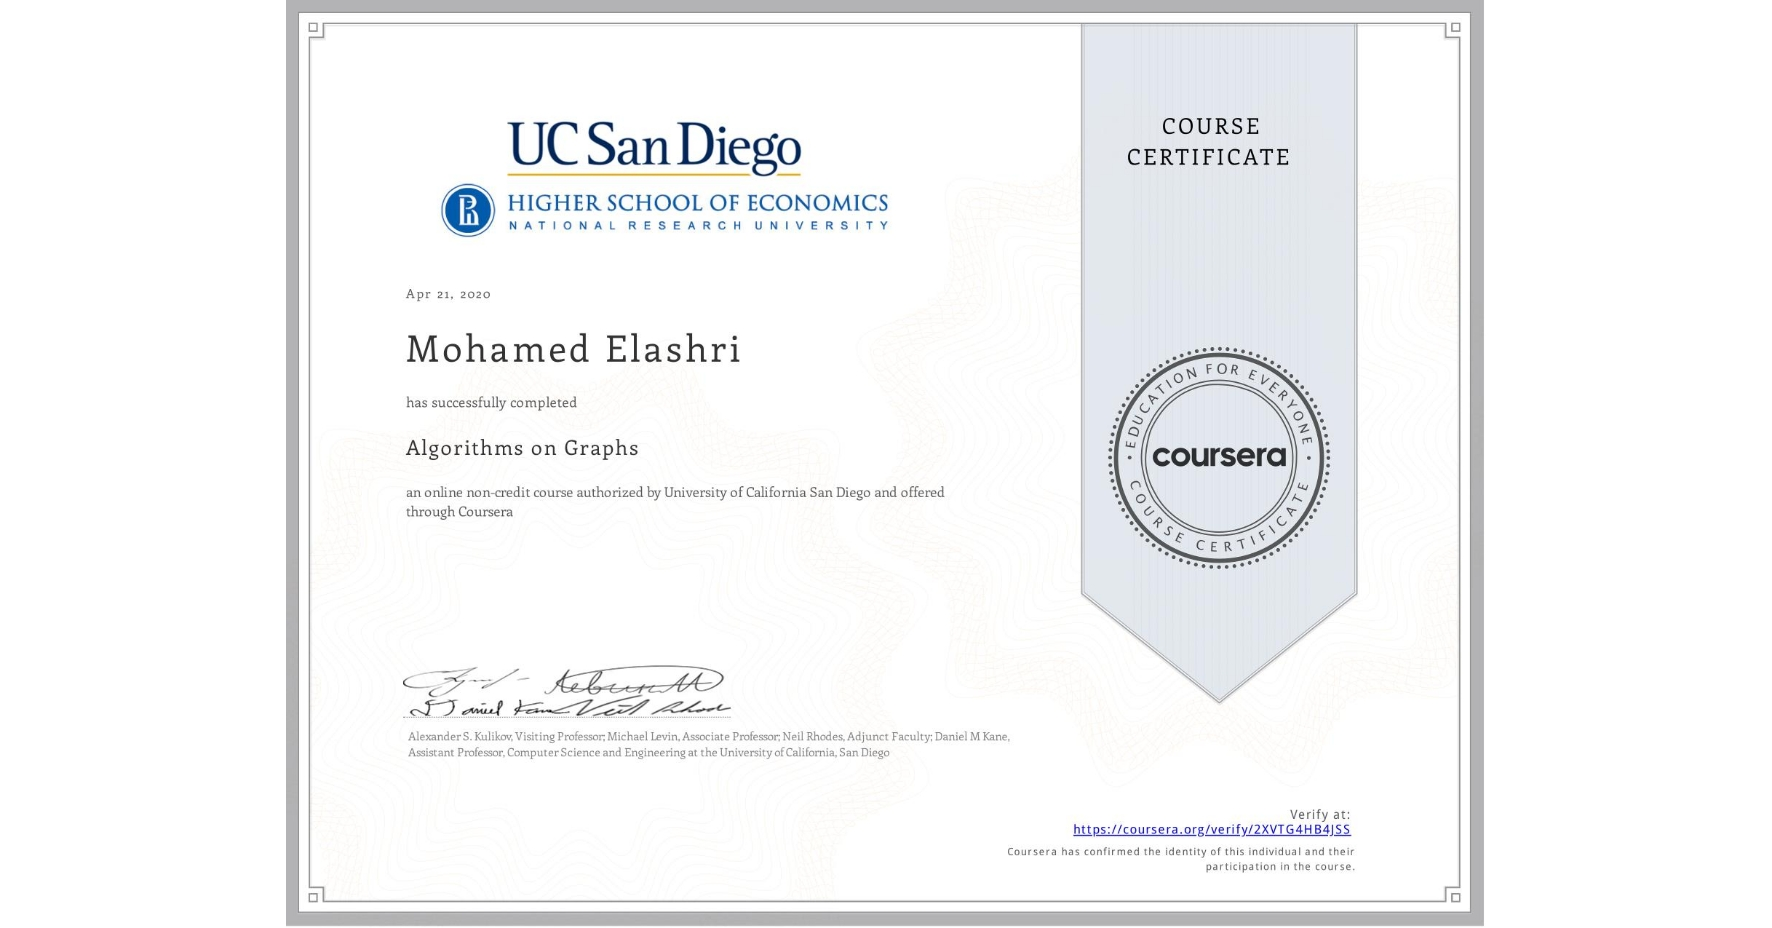 View certificate for Mohamed Elashri, Algorithms on Graphs, an online non-credit course authorized by University of California San Diego & National Research University Higher School of Economics and offered through Coursera